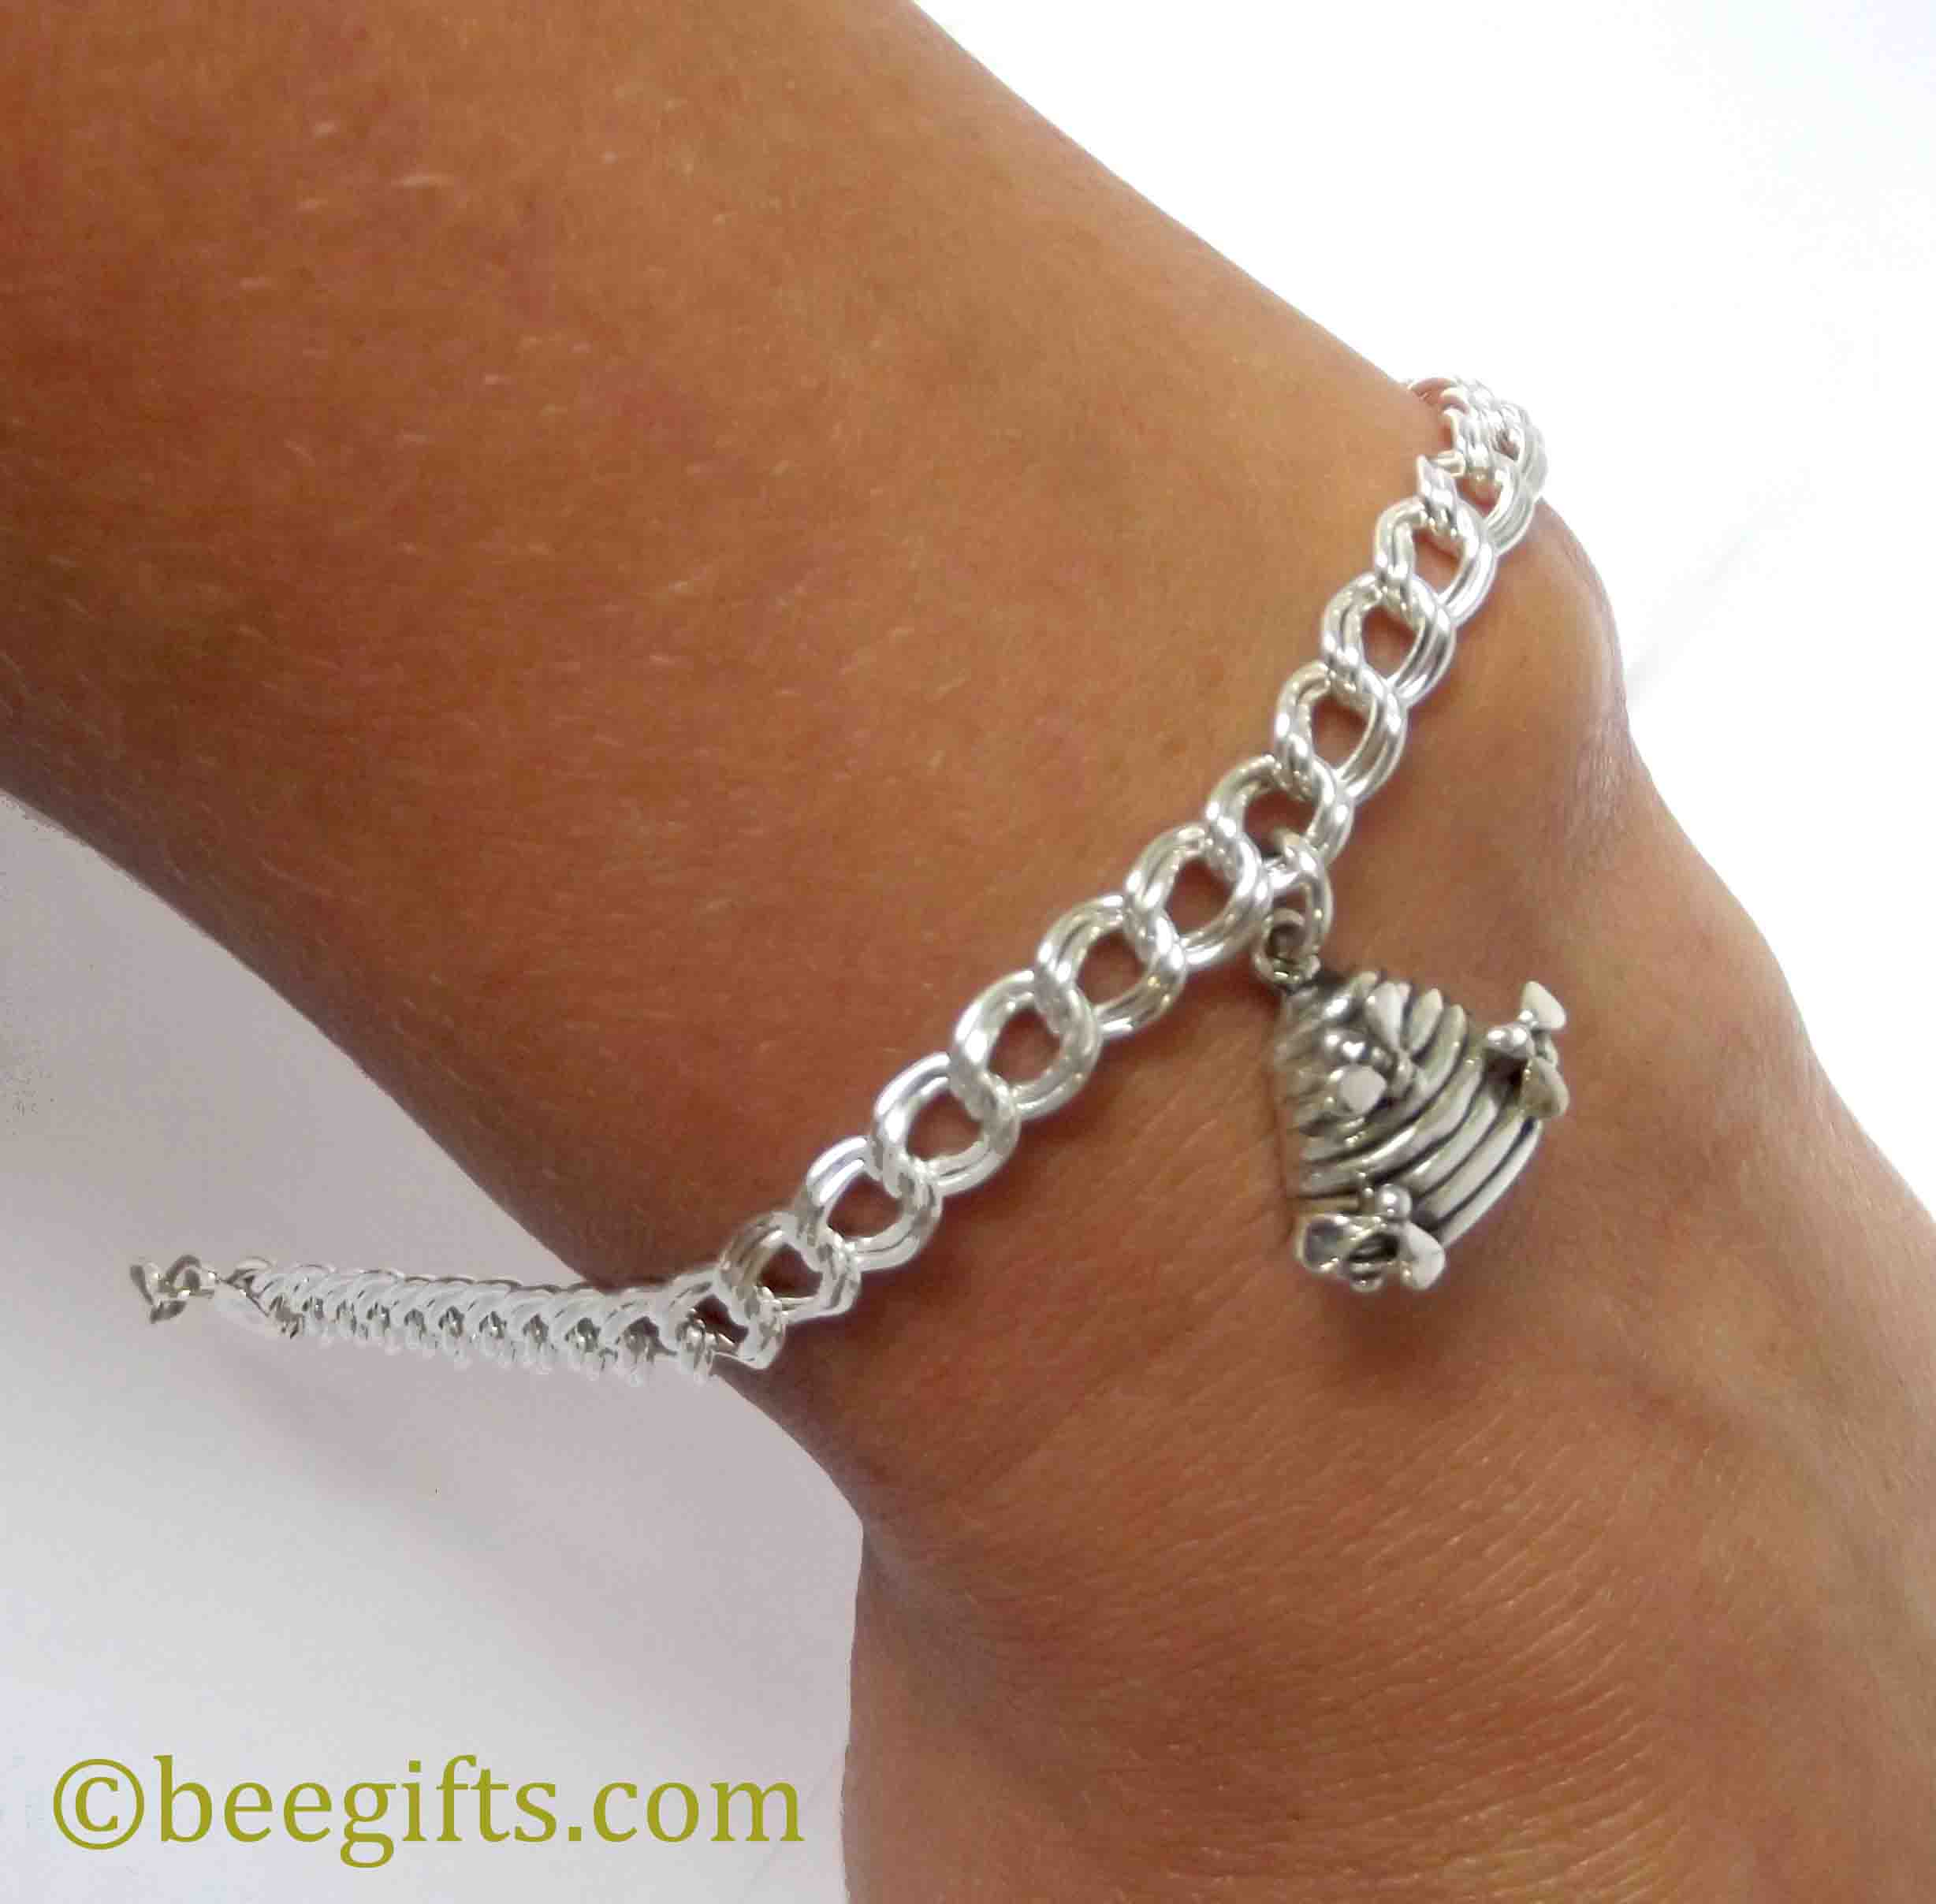 silver skep charm bracelet with bees bj sherriff